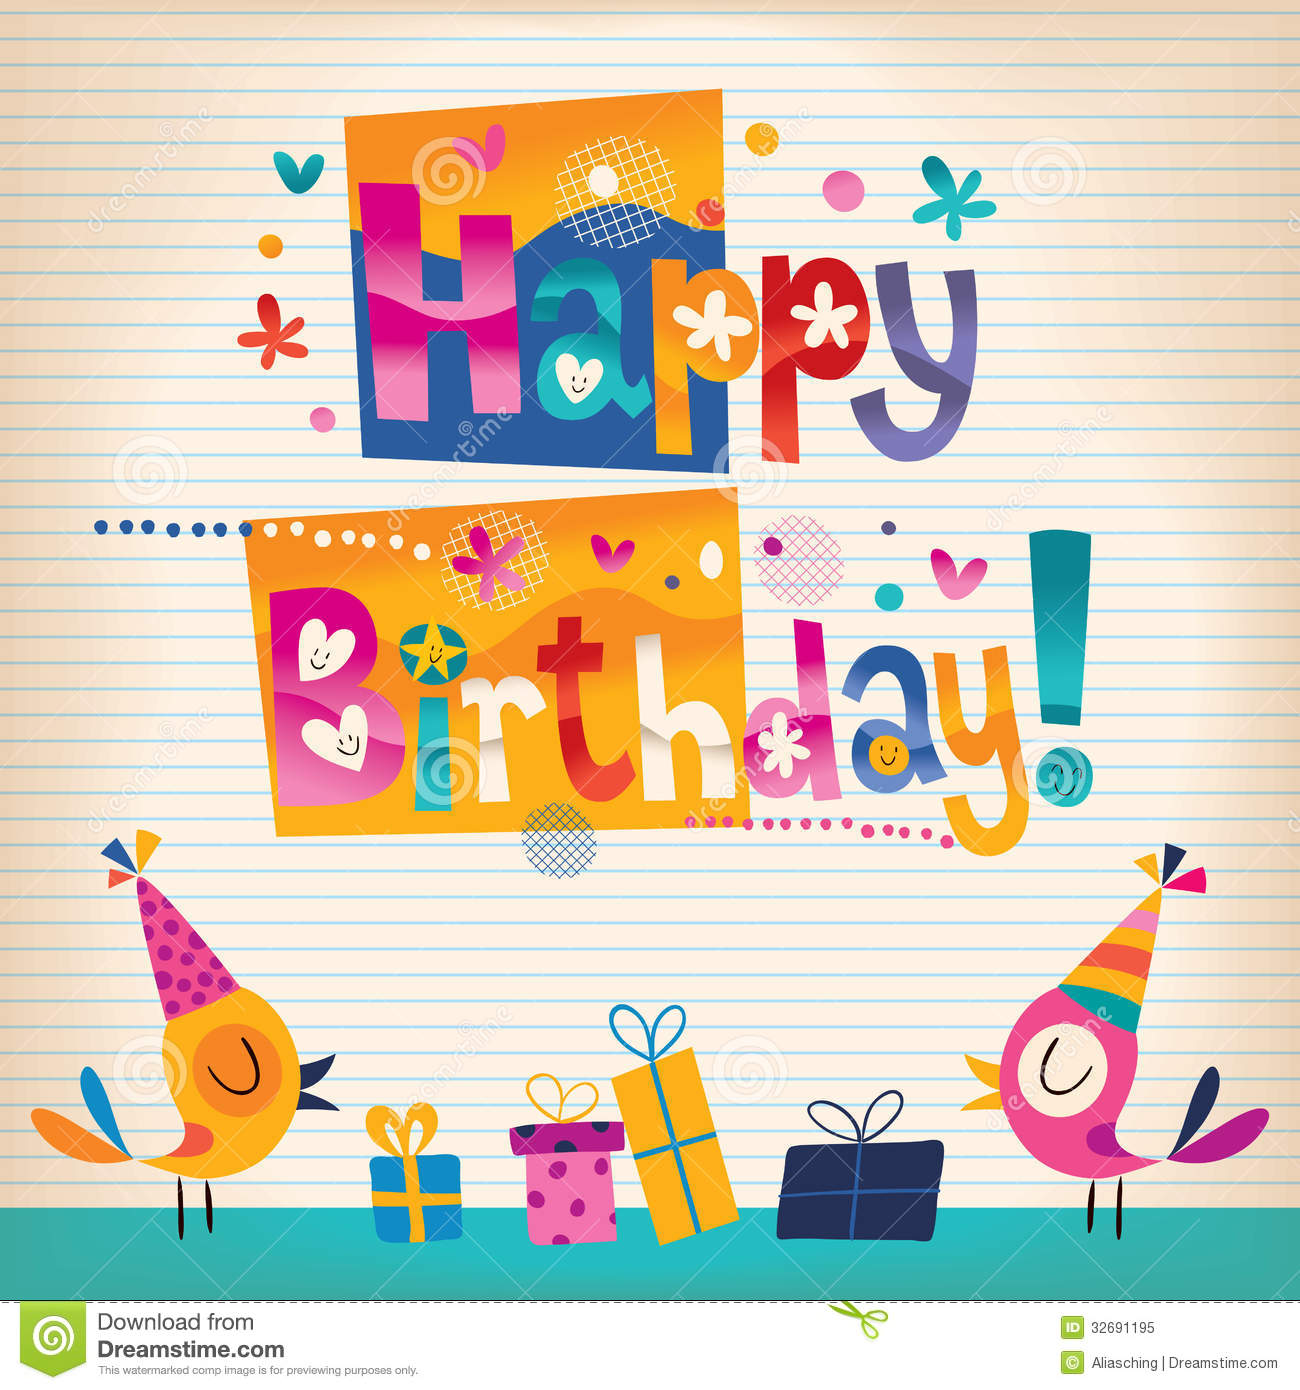 Cute Happy Birthday Card Image Image 36114761 – Unique Happy Birthday Greetings